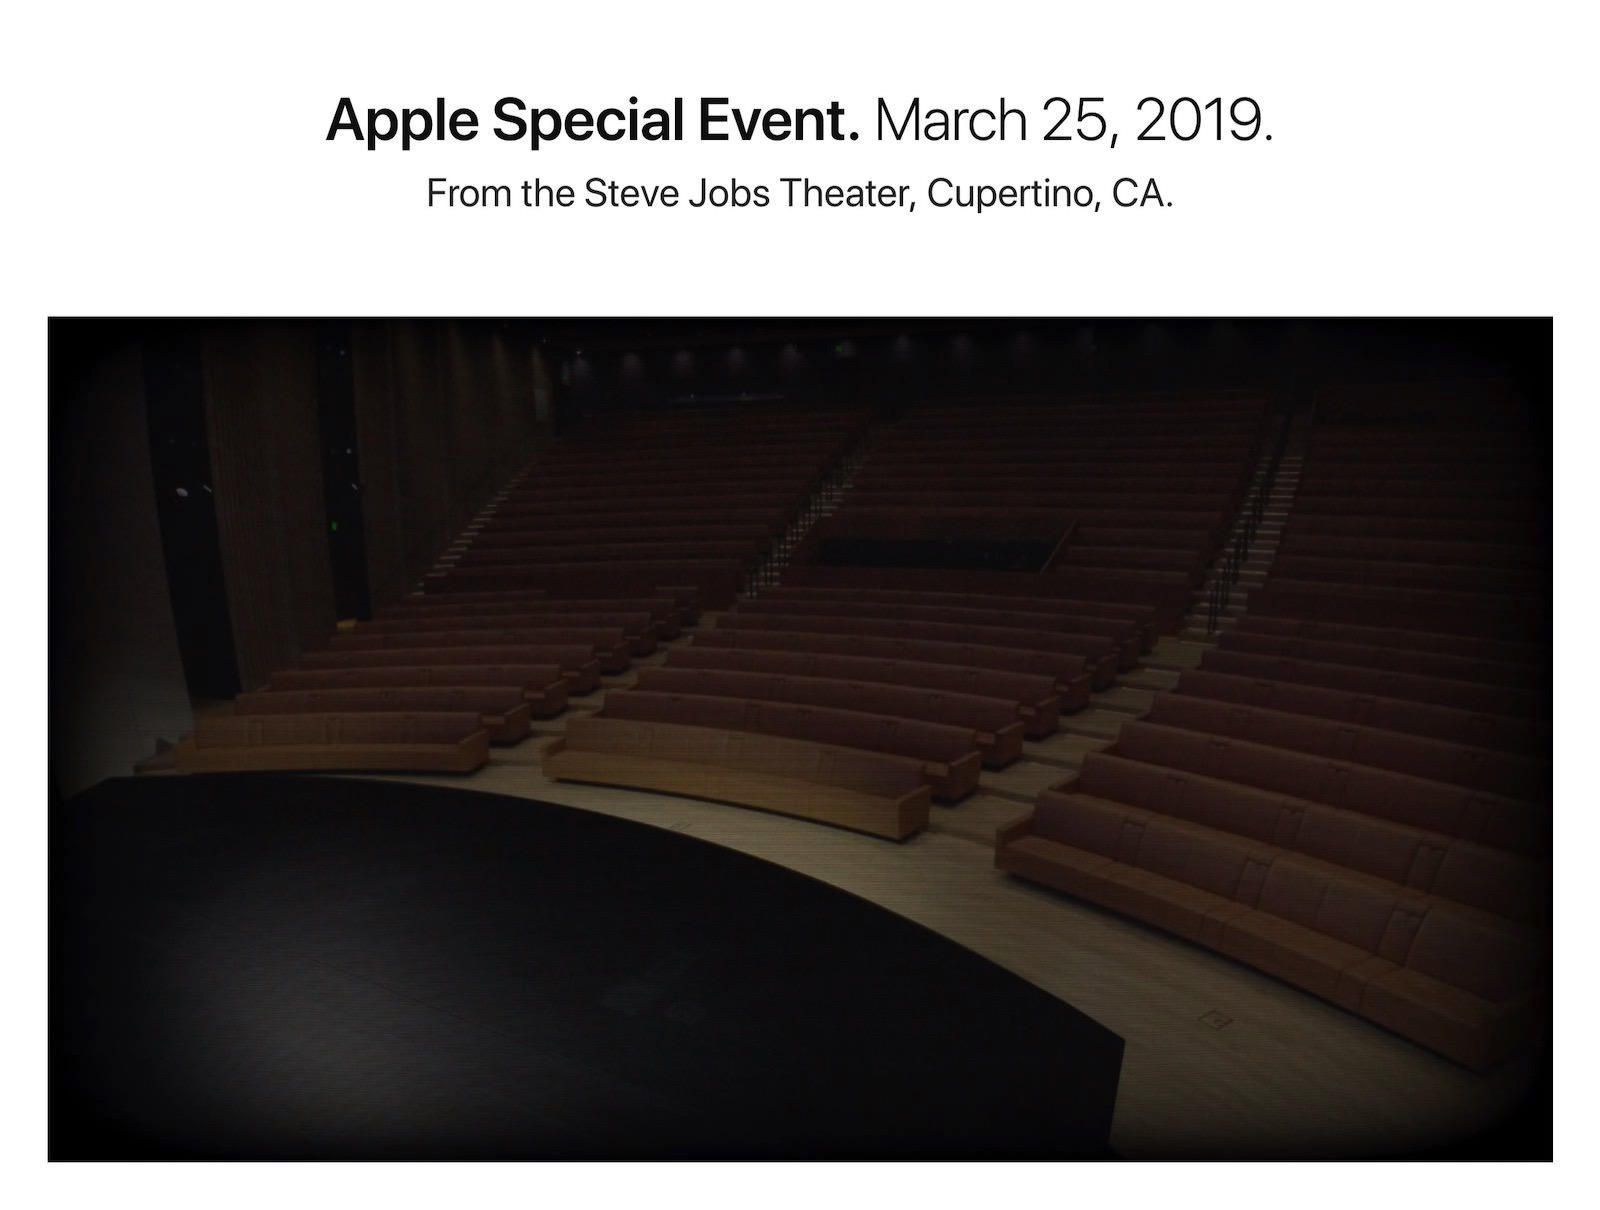 Live Streaming of Steve Jobs Theater